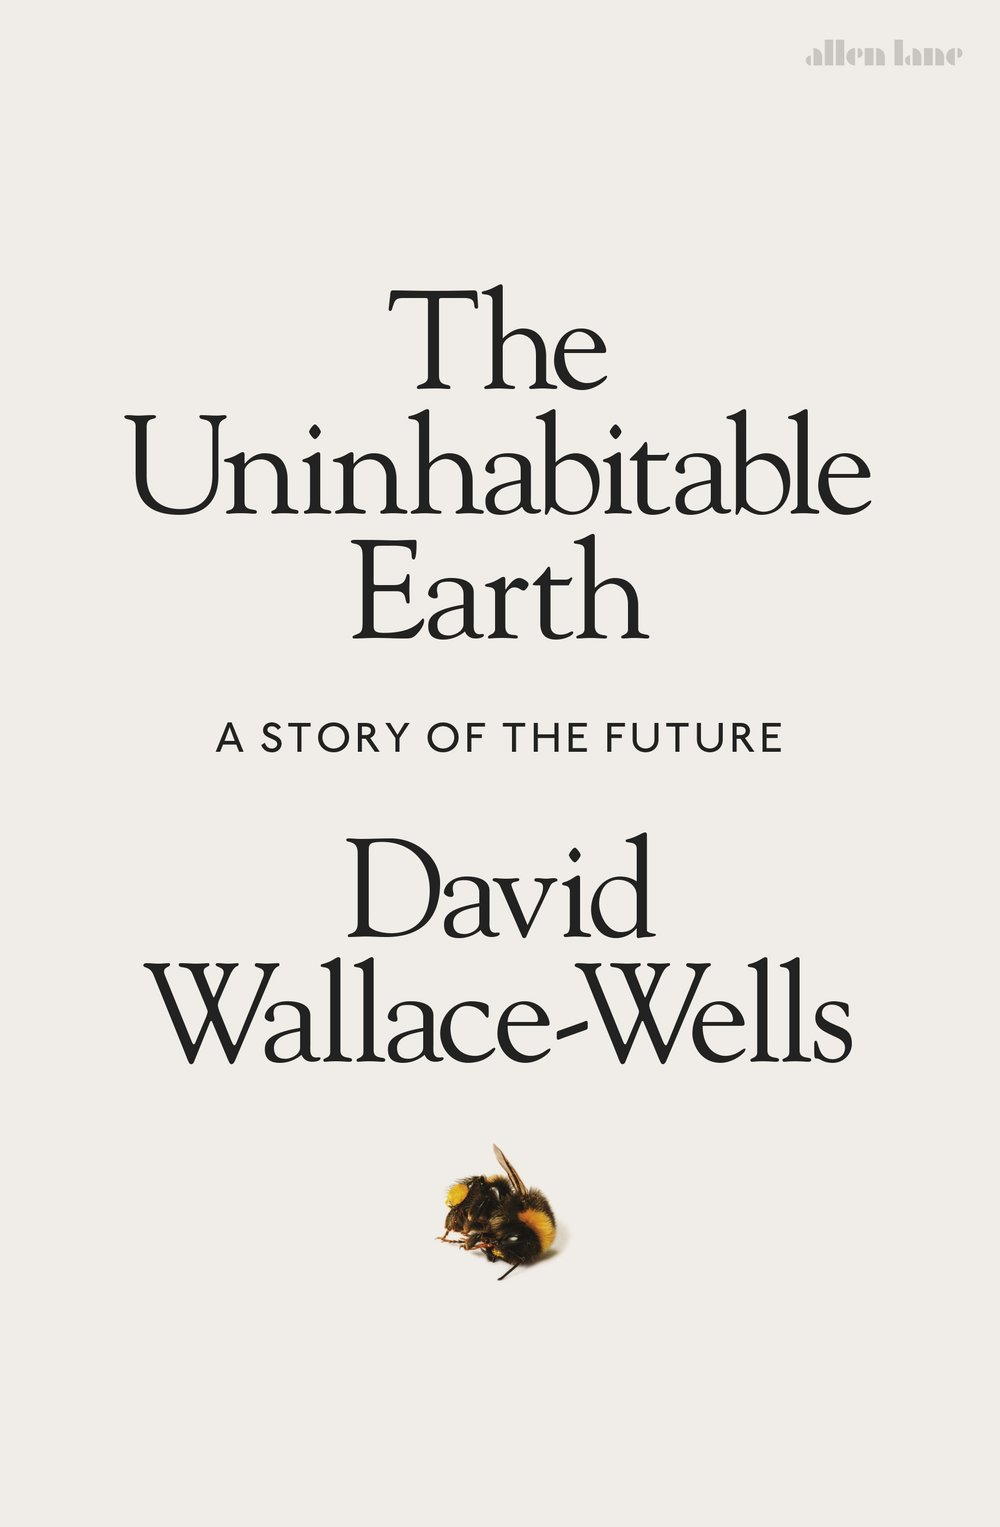 """The Uninhabitable Earth: Life After Warming - by David Wallace-Wells""""There's lots of books focused on how we can understand and think about climate change. This one connects with how we can feel about it, fully absorb what it means for our life and the planet, and perhaps inspire us to develop the courage to act with passion and purpose.""""- Jason King, Associate Principal, Landscape Architect"""